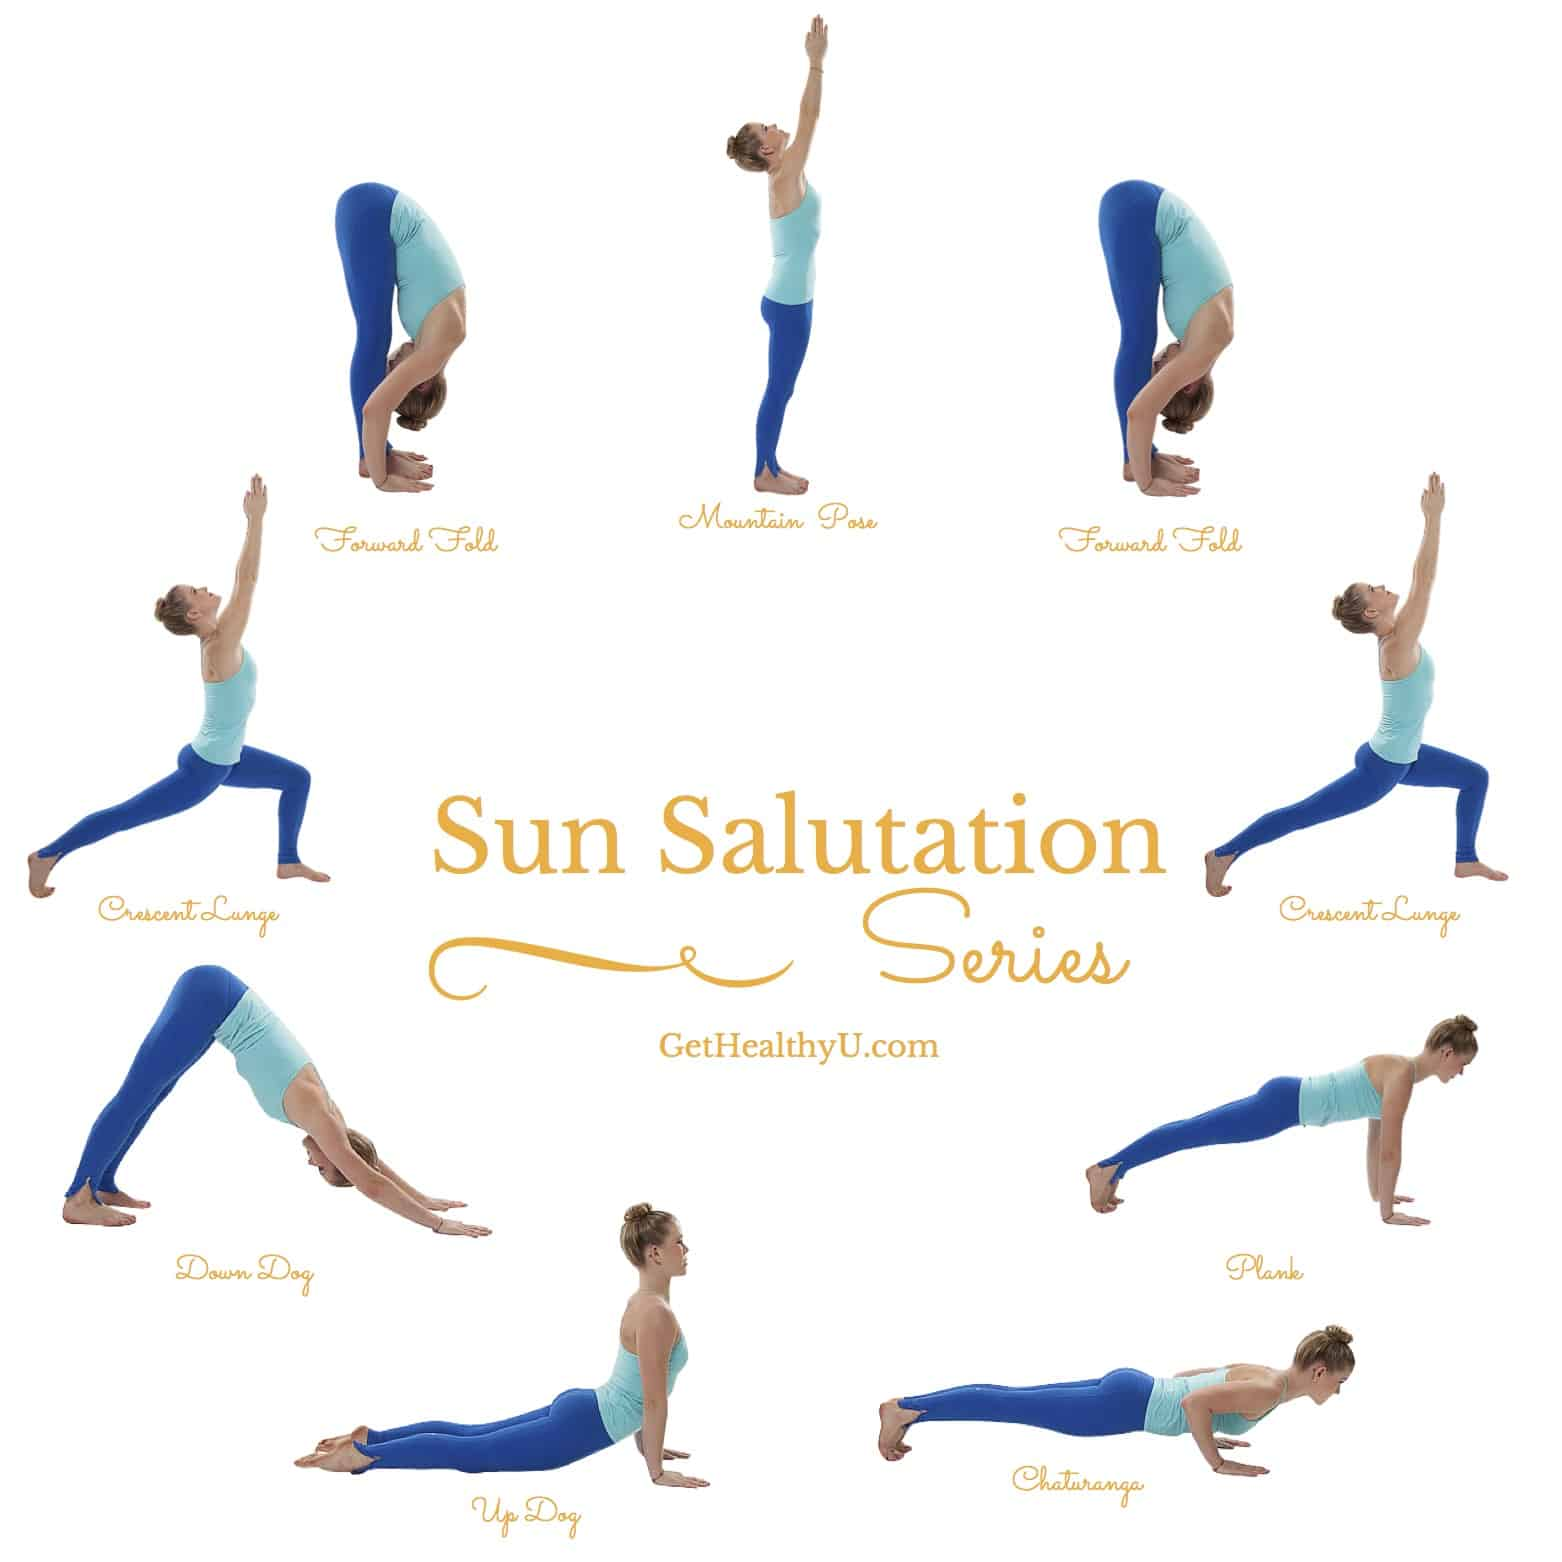 How To Do A Sun Salutation - Get Healthy U